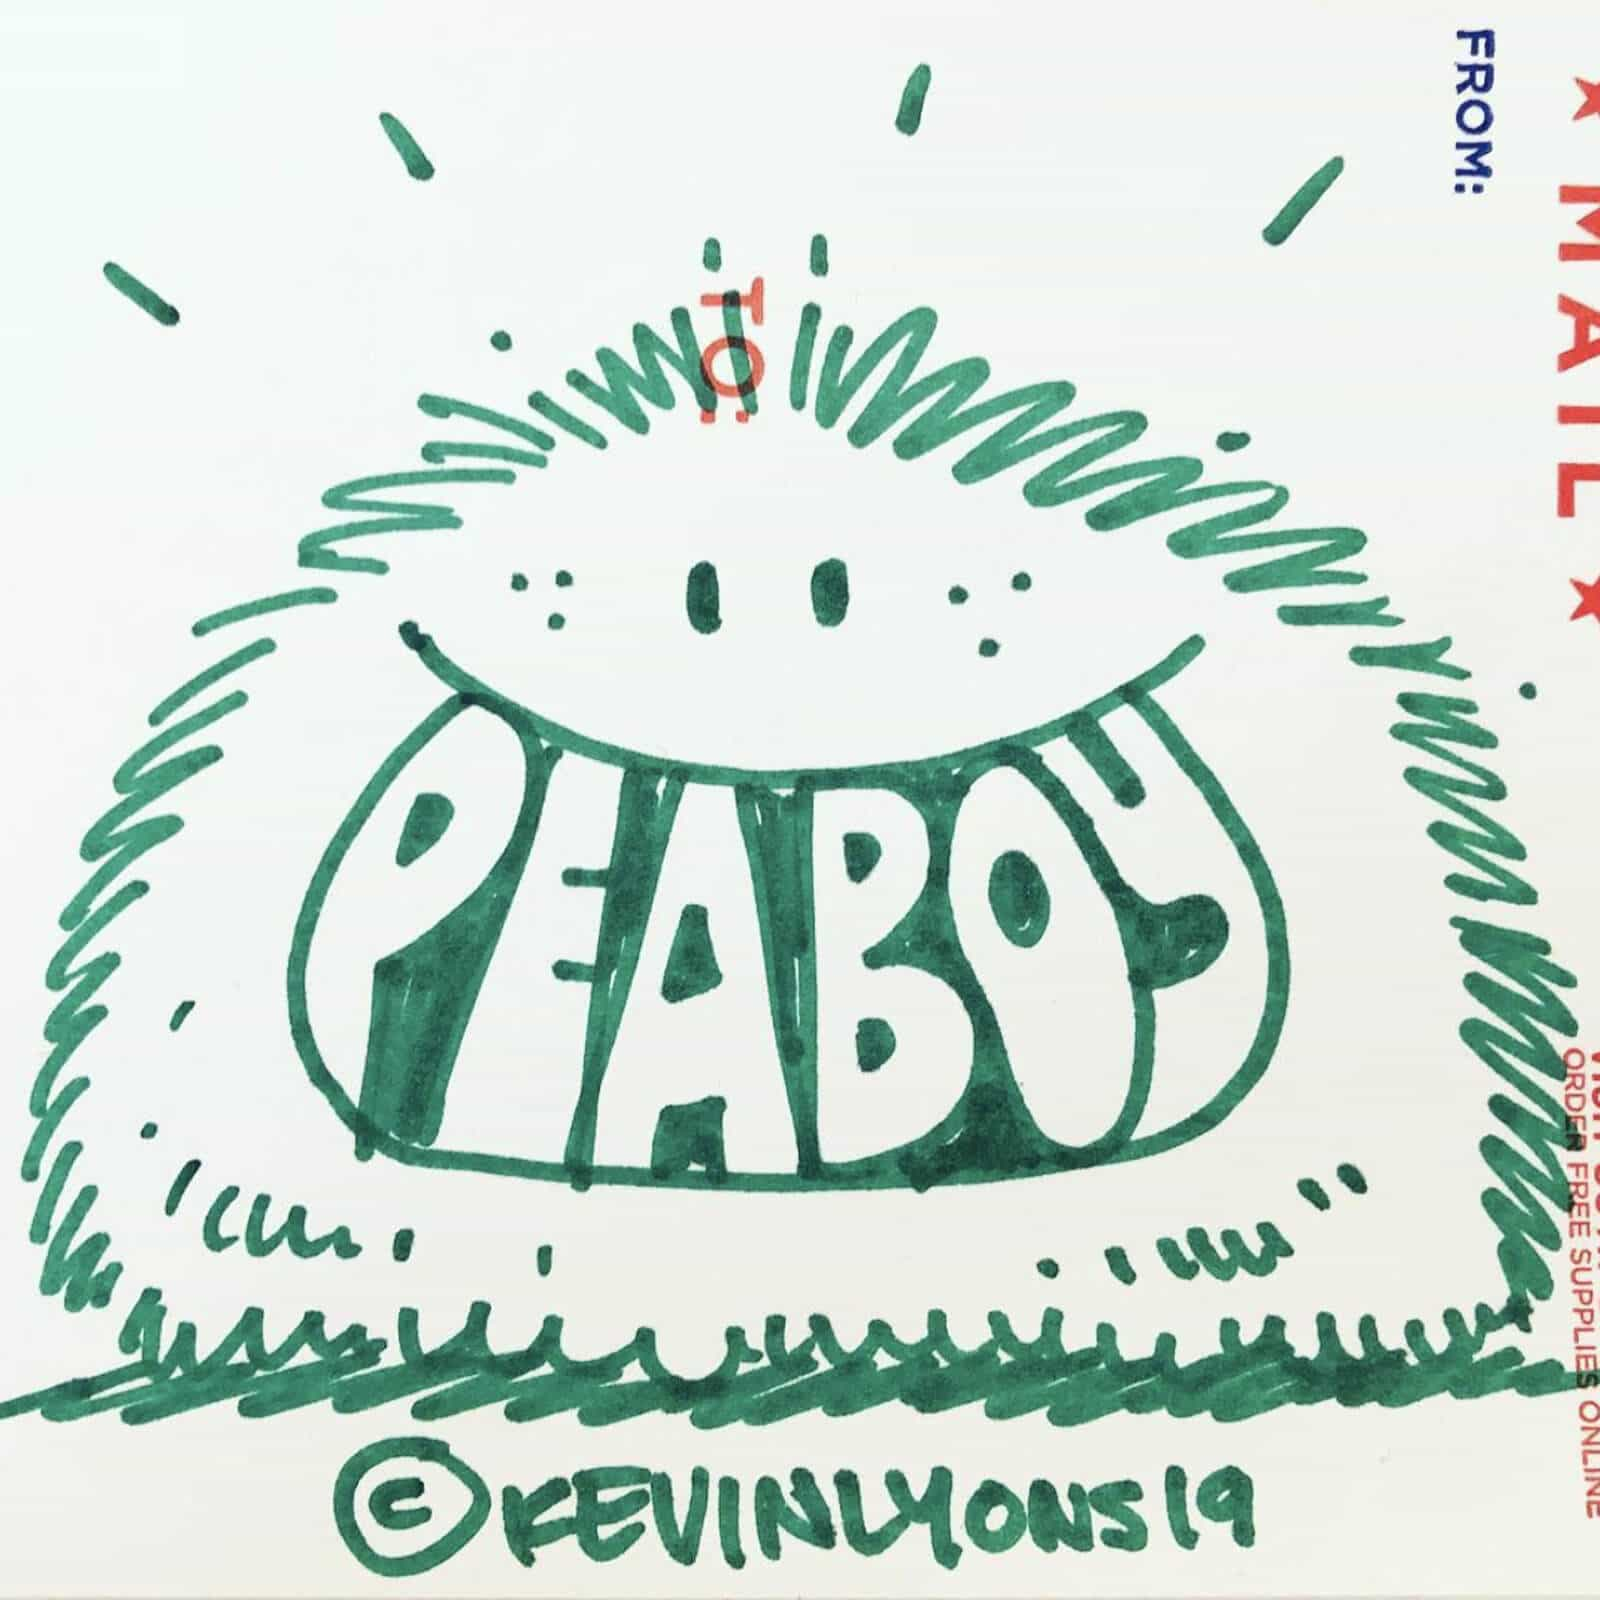 Peaboy by Kevin Lyons